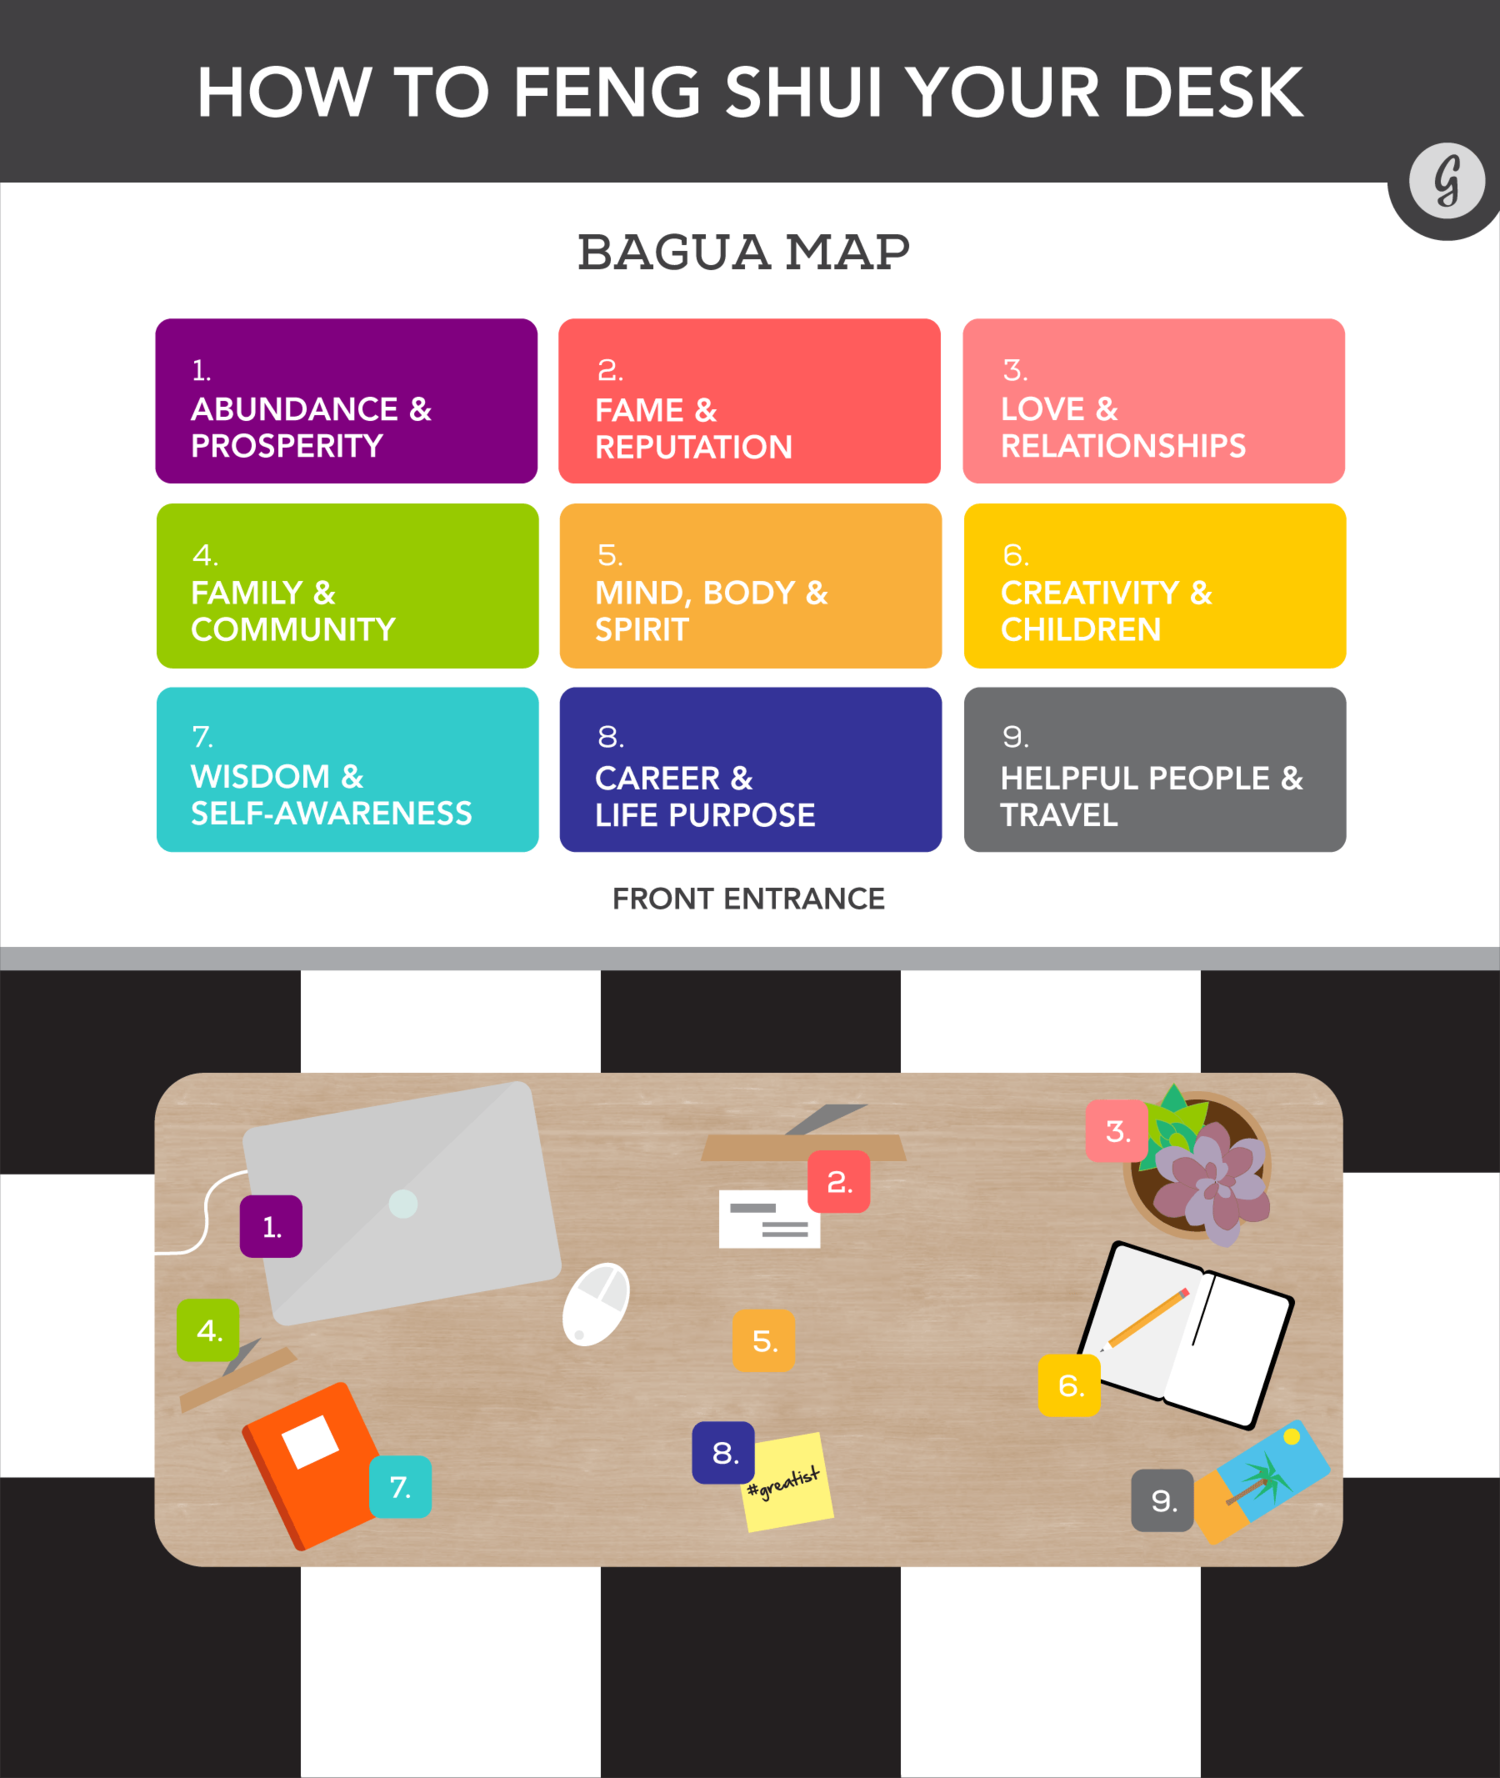 Feng Shui Bagua Vision Board Feng Shui The Ultimate Guide To Designing Your Desk For